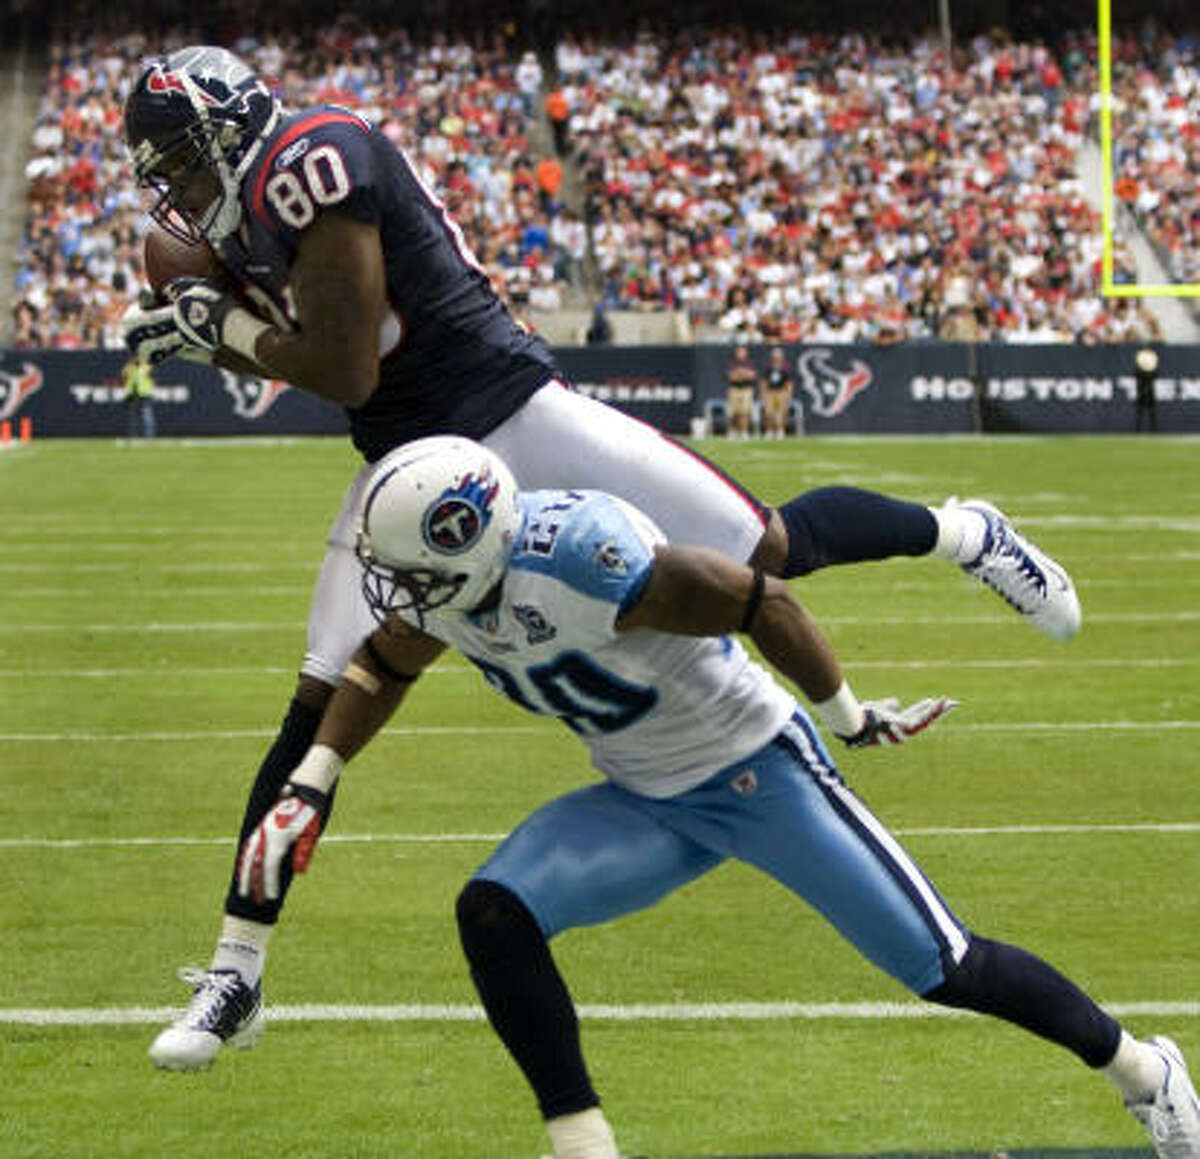 Dec. 14, 2008: Receiver Andre Johnson had a career day in the Texans' stunning 13-12 upset win over the AFC South-leading Titans. Johnson caught 11 passes for 207 yards and a touchdown in what was the biggest win in franchise history.